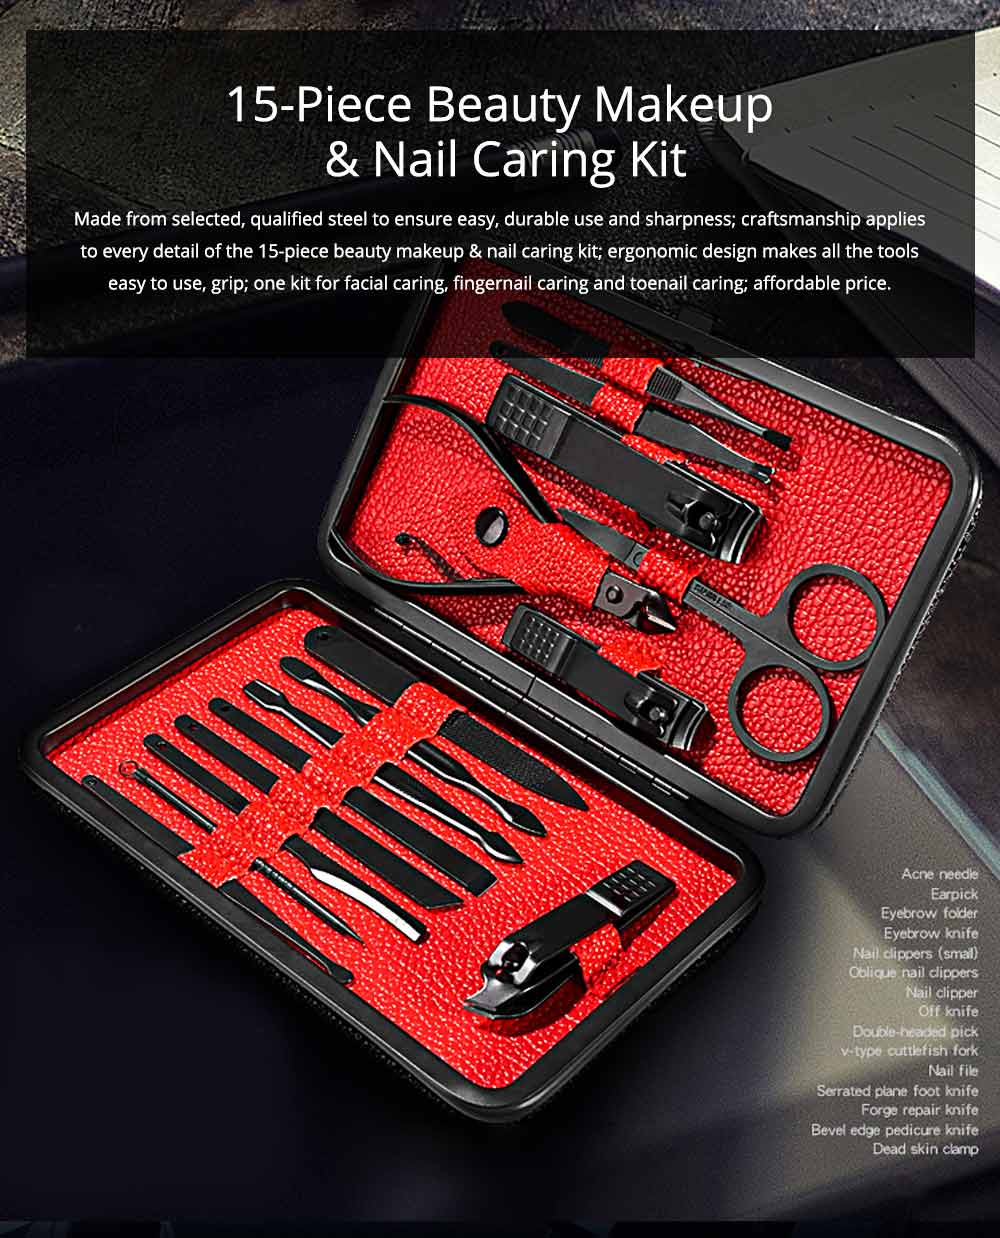 Stainless Steel Tools for Beauty Makeup and Nail Caring Household Beauty Makeup and Nail Caring Kit Nail Clippers Kit Eyebrow Trimmer etc Family Used 15-piece Kit 0